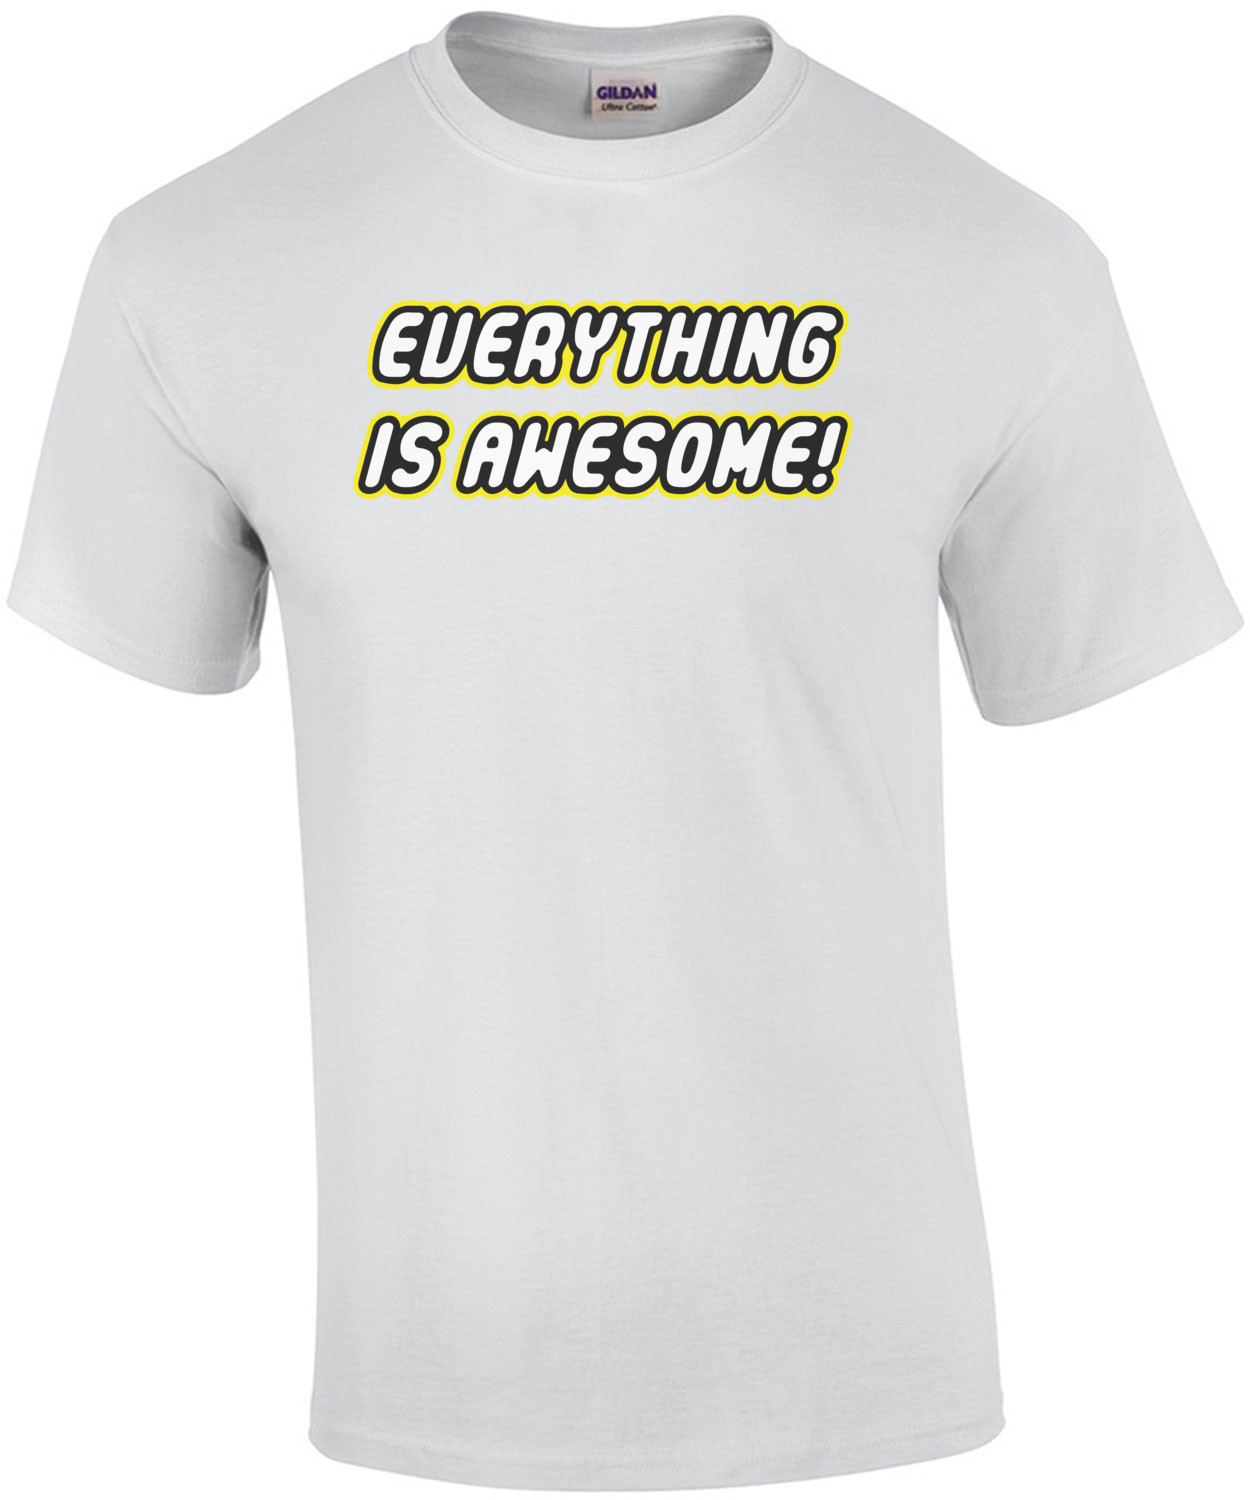 Everything is awesome - Lego Movie T-Shirt shirt